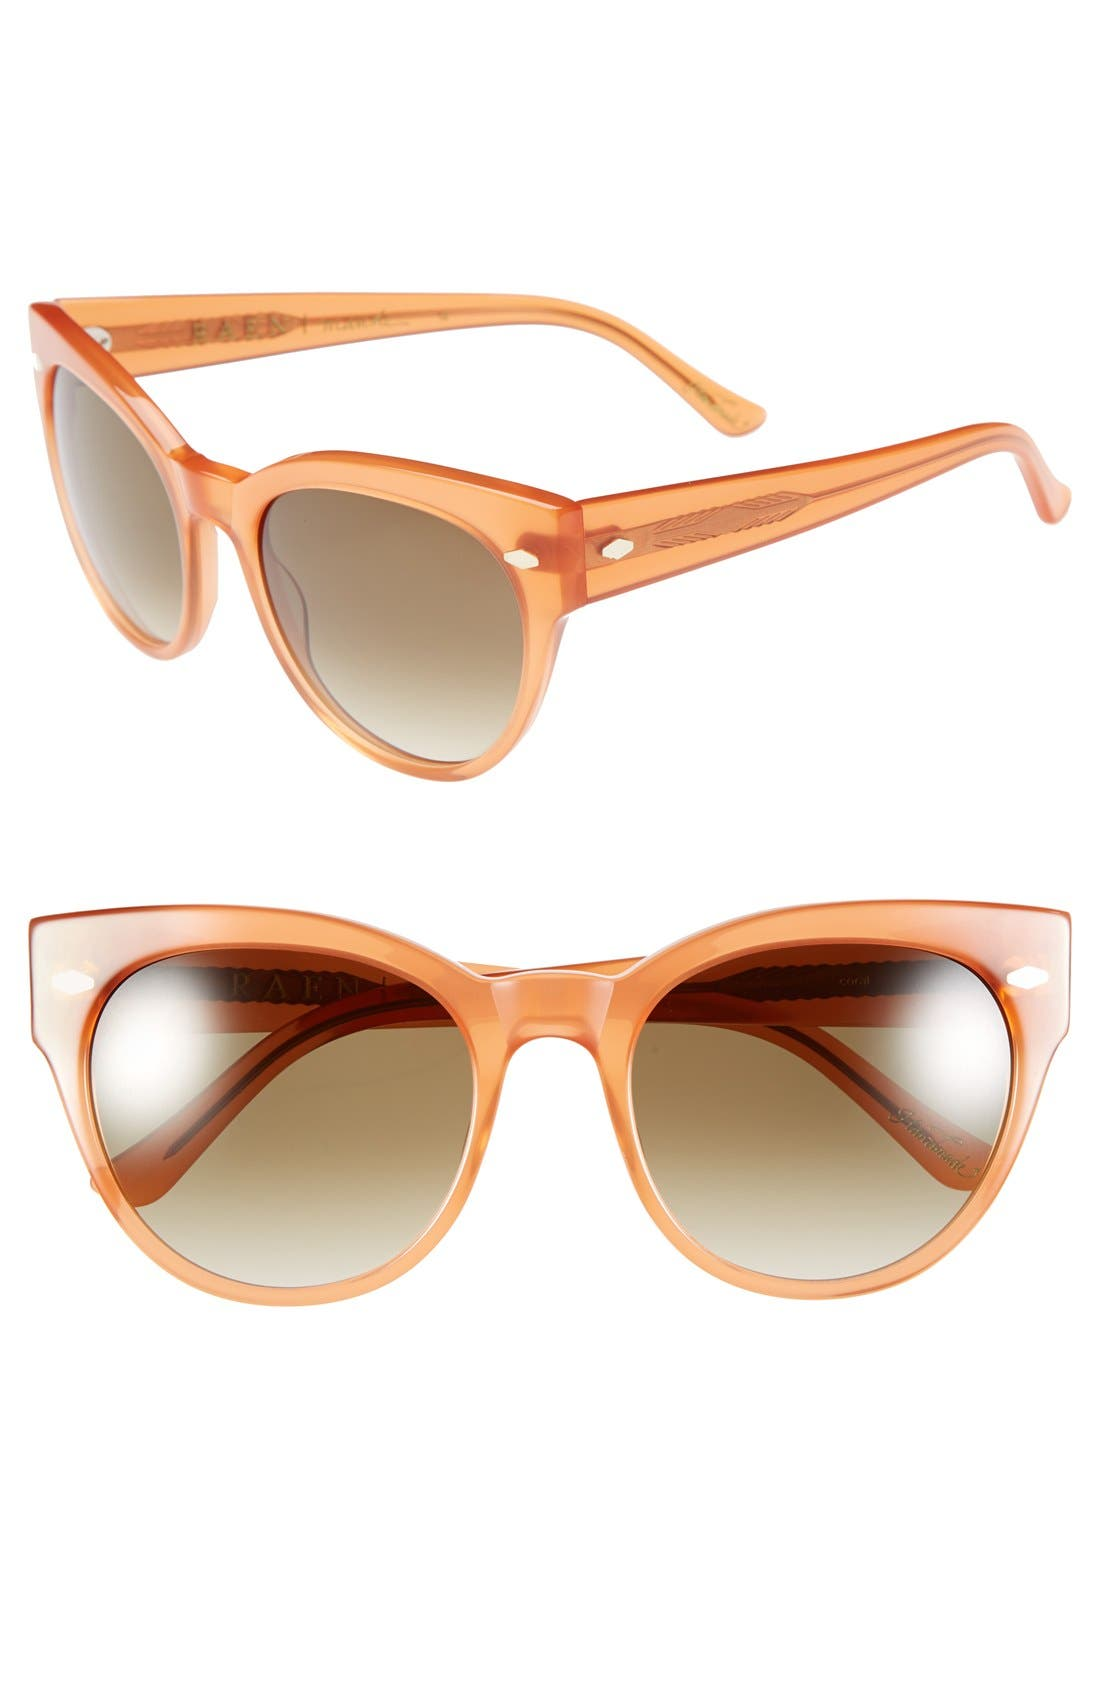 Alternate Image 1 Selected - Furla 54mm Sunglasses